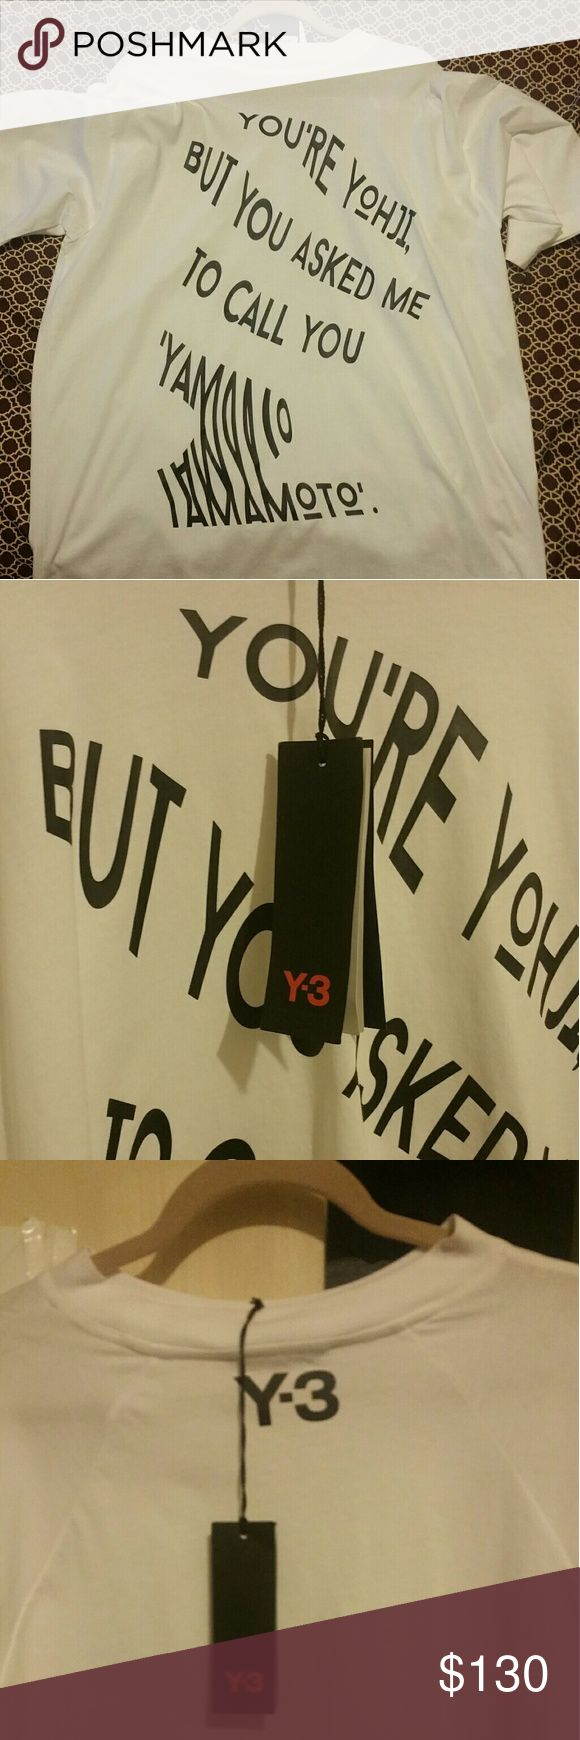 Y-3 T-SHIRT WITH WRITING BUYERS BE AWARE ALL MY STUFF IS DISCOUNTED BETTER PRICES THEN THE ONES IN THE STORES. I GO DIRECTLY TO SELLERS AND HAND PICK WHAT IS HOT AND WILL ALWAYS STAY HOT. SO SERIOUS BUYERS ONLY!!!!!!! YOU WON'T BE DISAPPOINTED IN MY ITEMS ALL IS REAL I TAKE PRIDE. Brand new #allmystuffislegit #comecorrectorjustkeepontrucking #instorespricetagexpensive #inmyclosetaffordable #nothingfakebutthedummyyouseeonprofilelol #letsshopandgetadealbettertheninthestores…